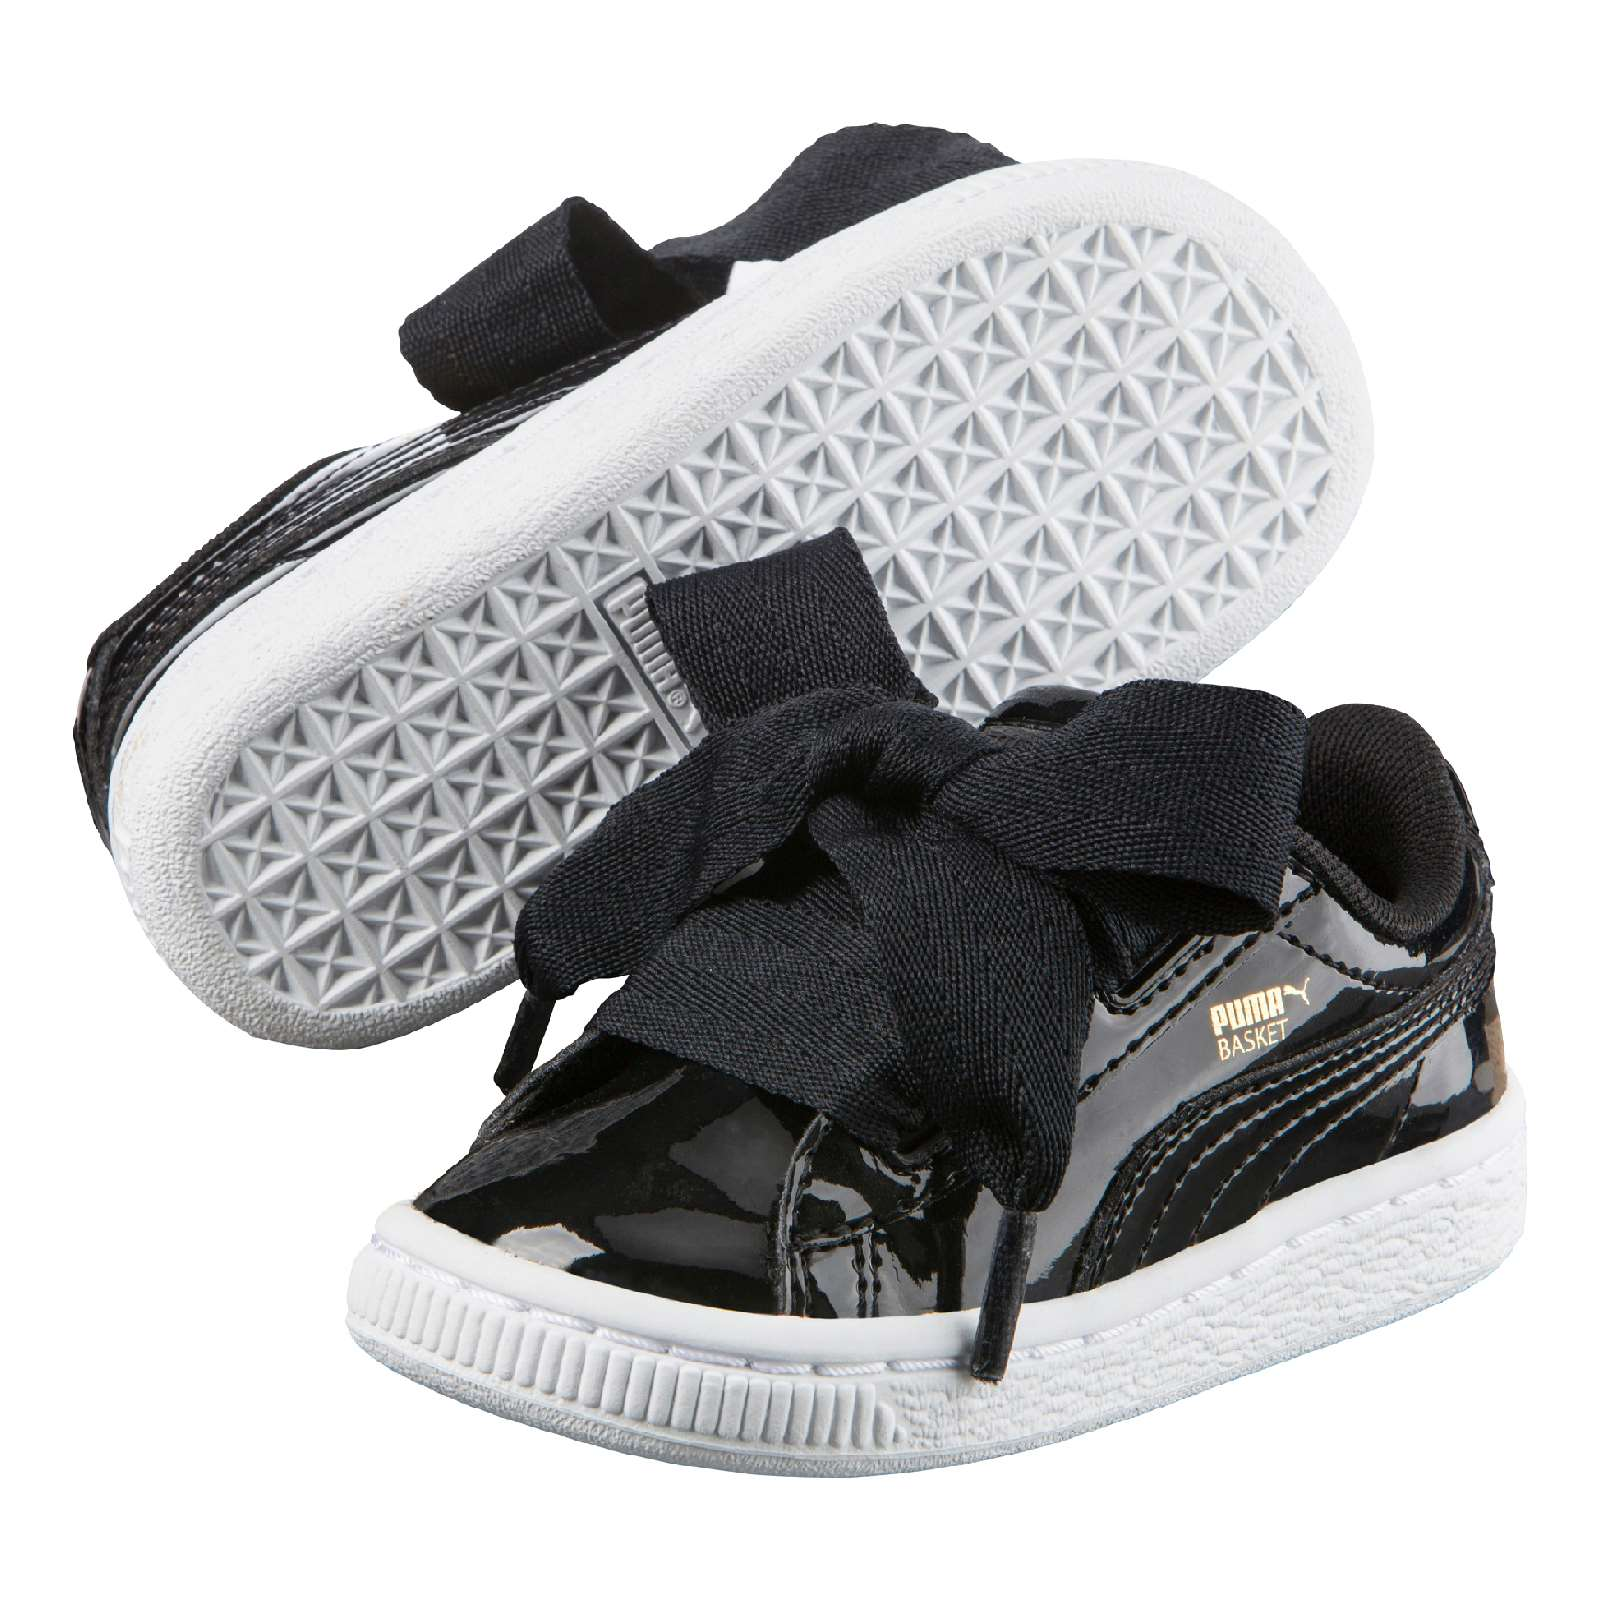 puma heart noir vernis foot locker